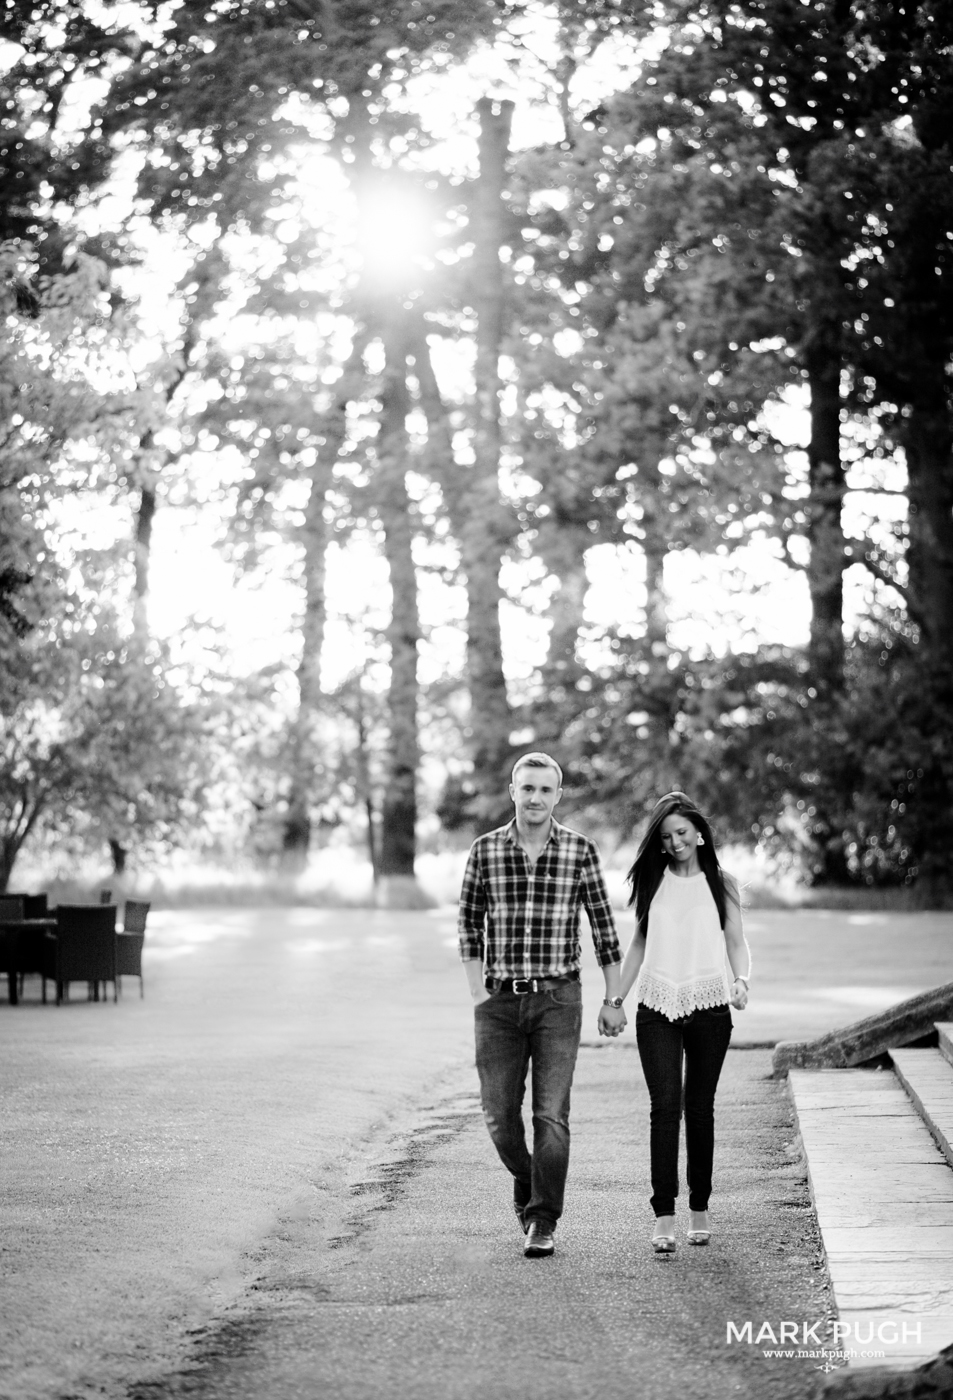 048 -  Jacqueline and Davids preWED love session at Kelham House Country Manor Hotel by www.markpugh.com - 0034.JPG